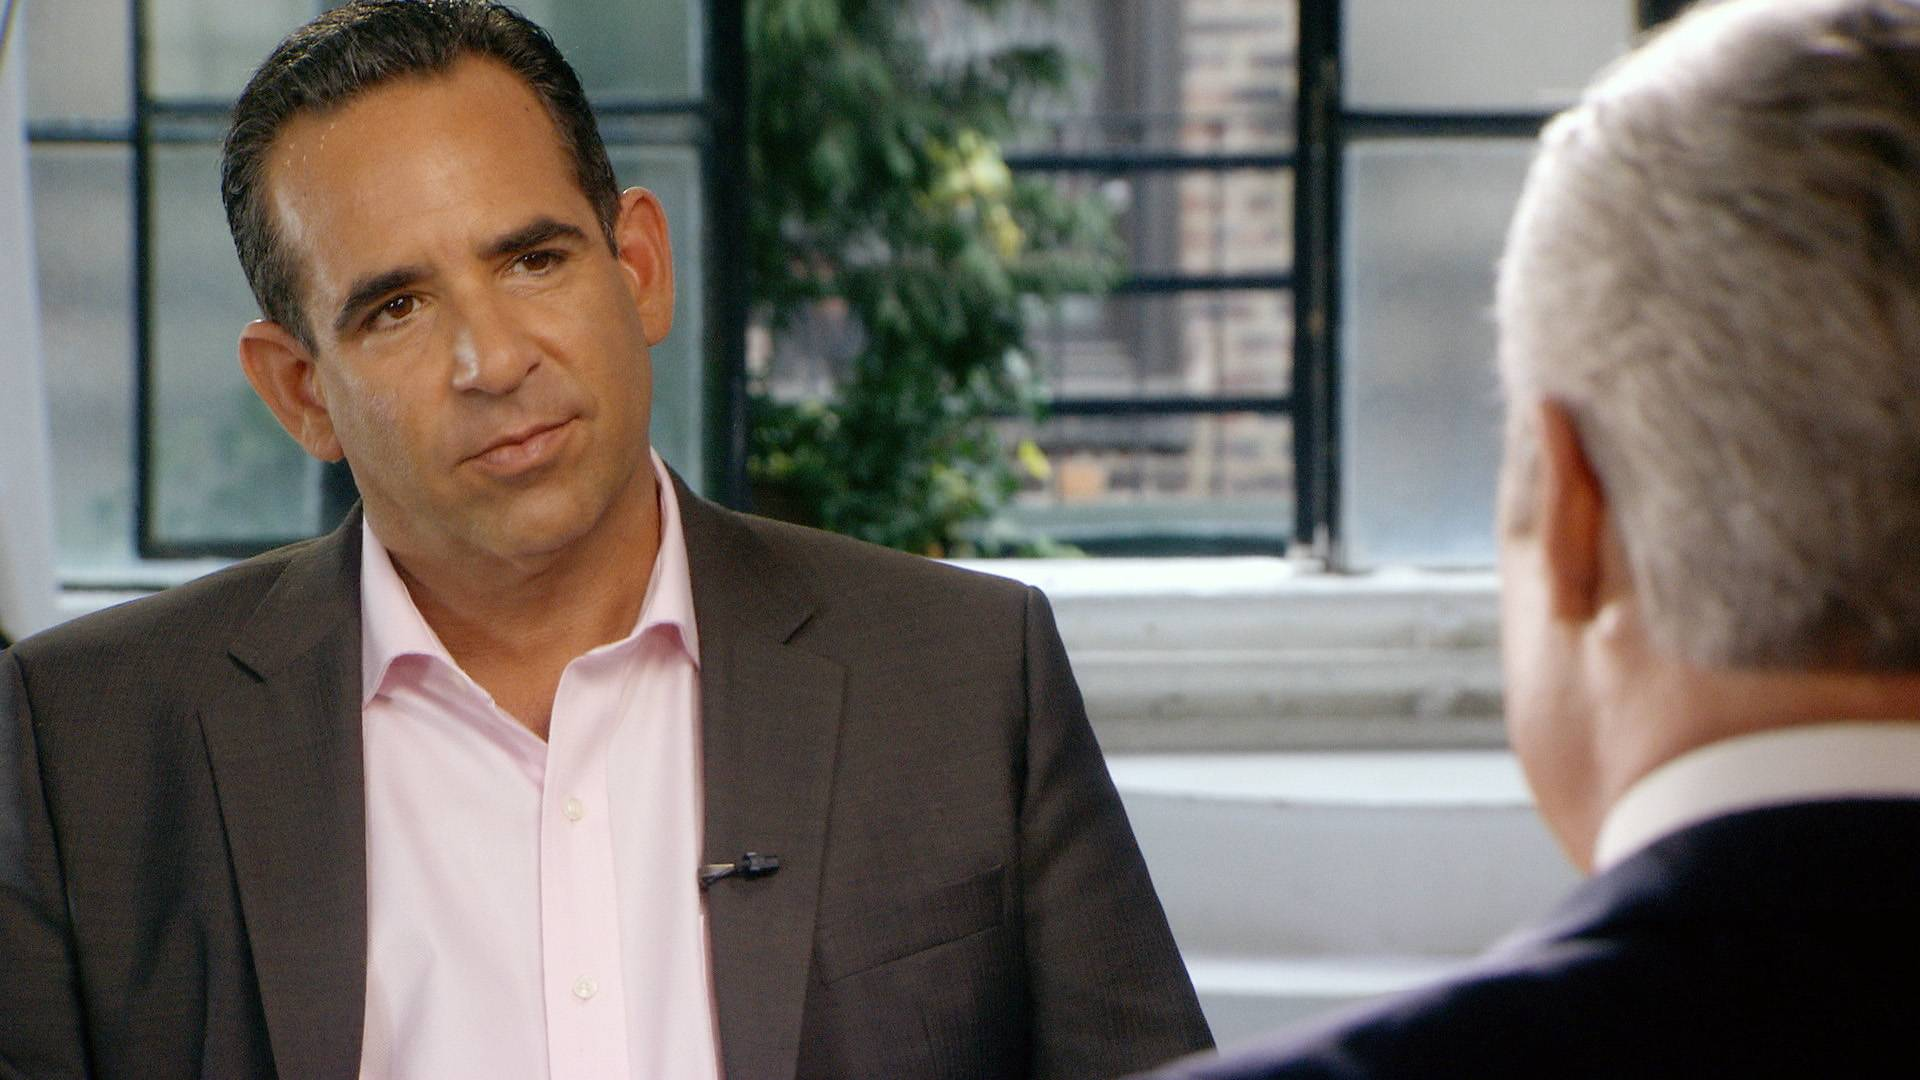 Biogenesis founder Anthony Bosch, left, talks with 60 Minutes correspondent Scott Pelley. Federal authorities are charging the owner of a defunct Florida clinic accused of providing steroids and other banned substances to Major League Baseball players, including New York Yankees star Alex Rodriguez.